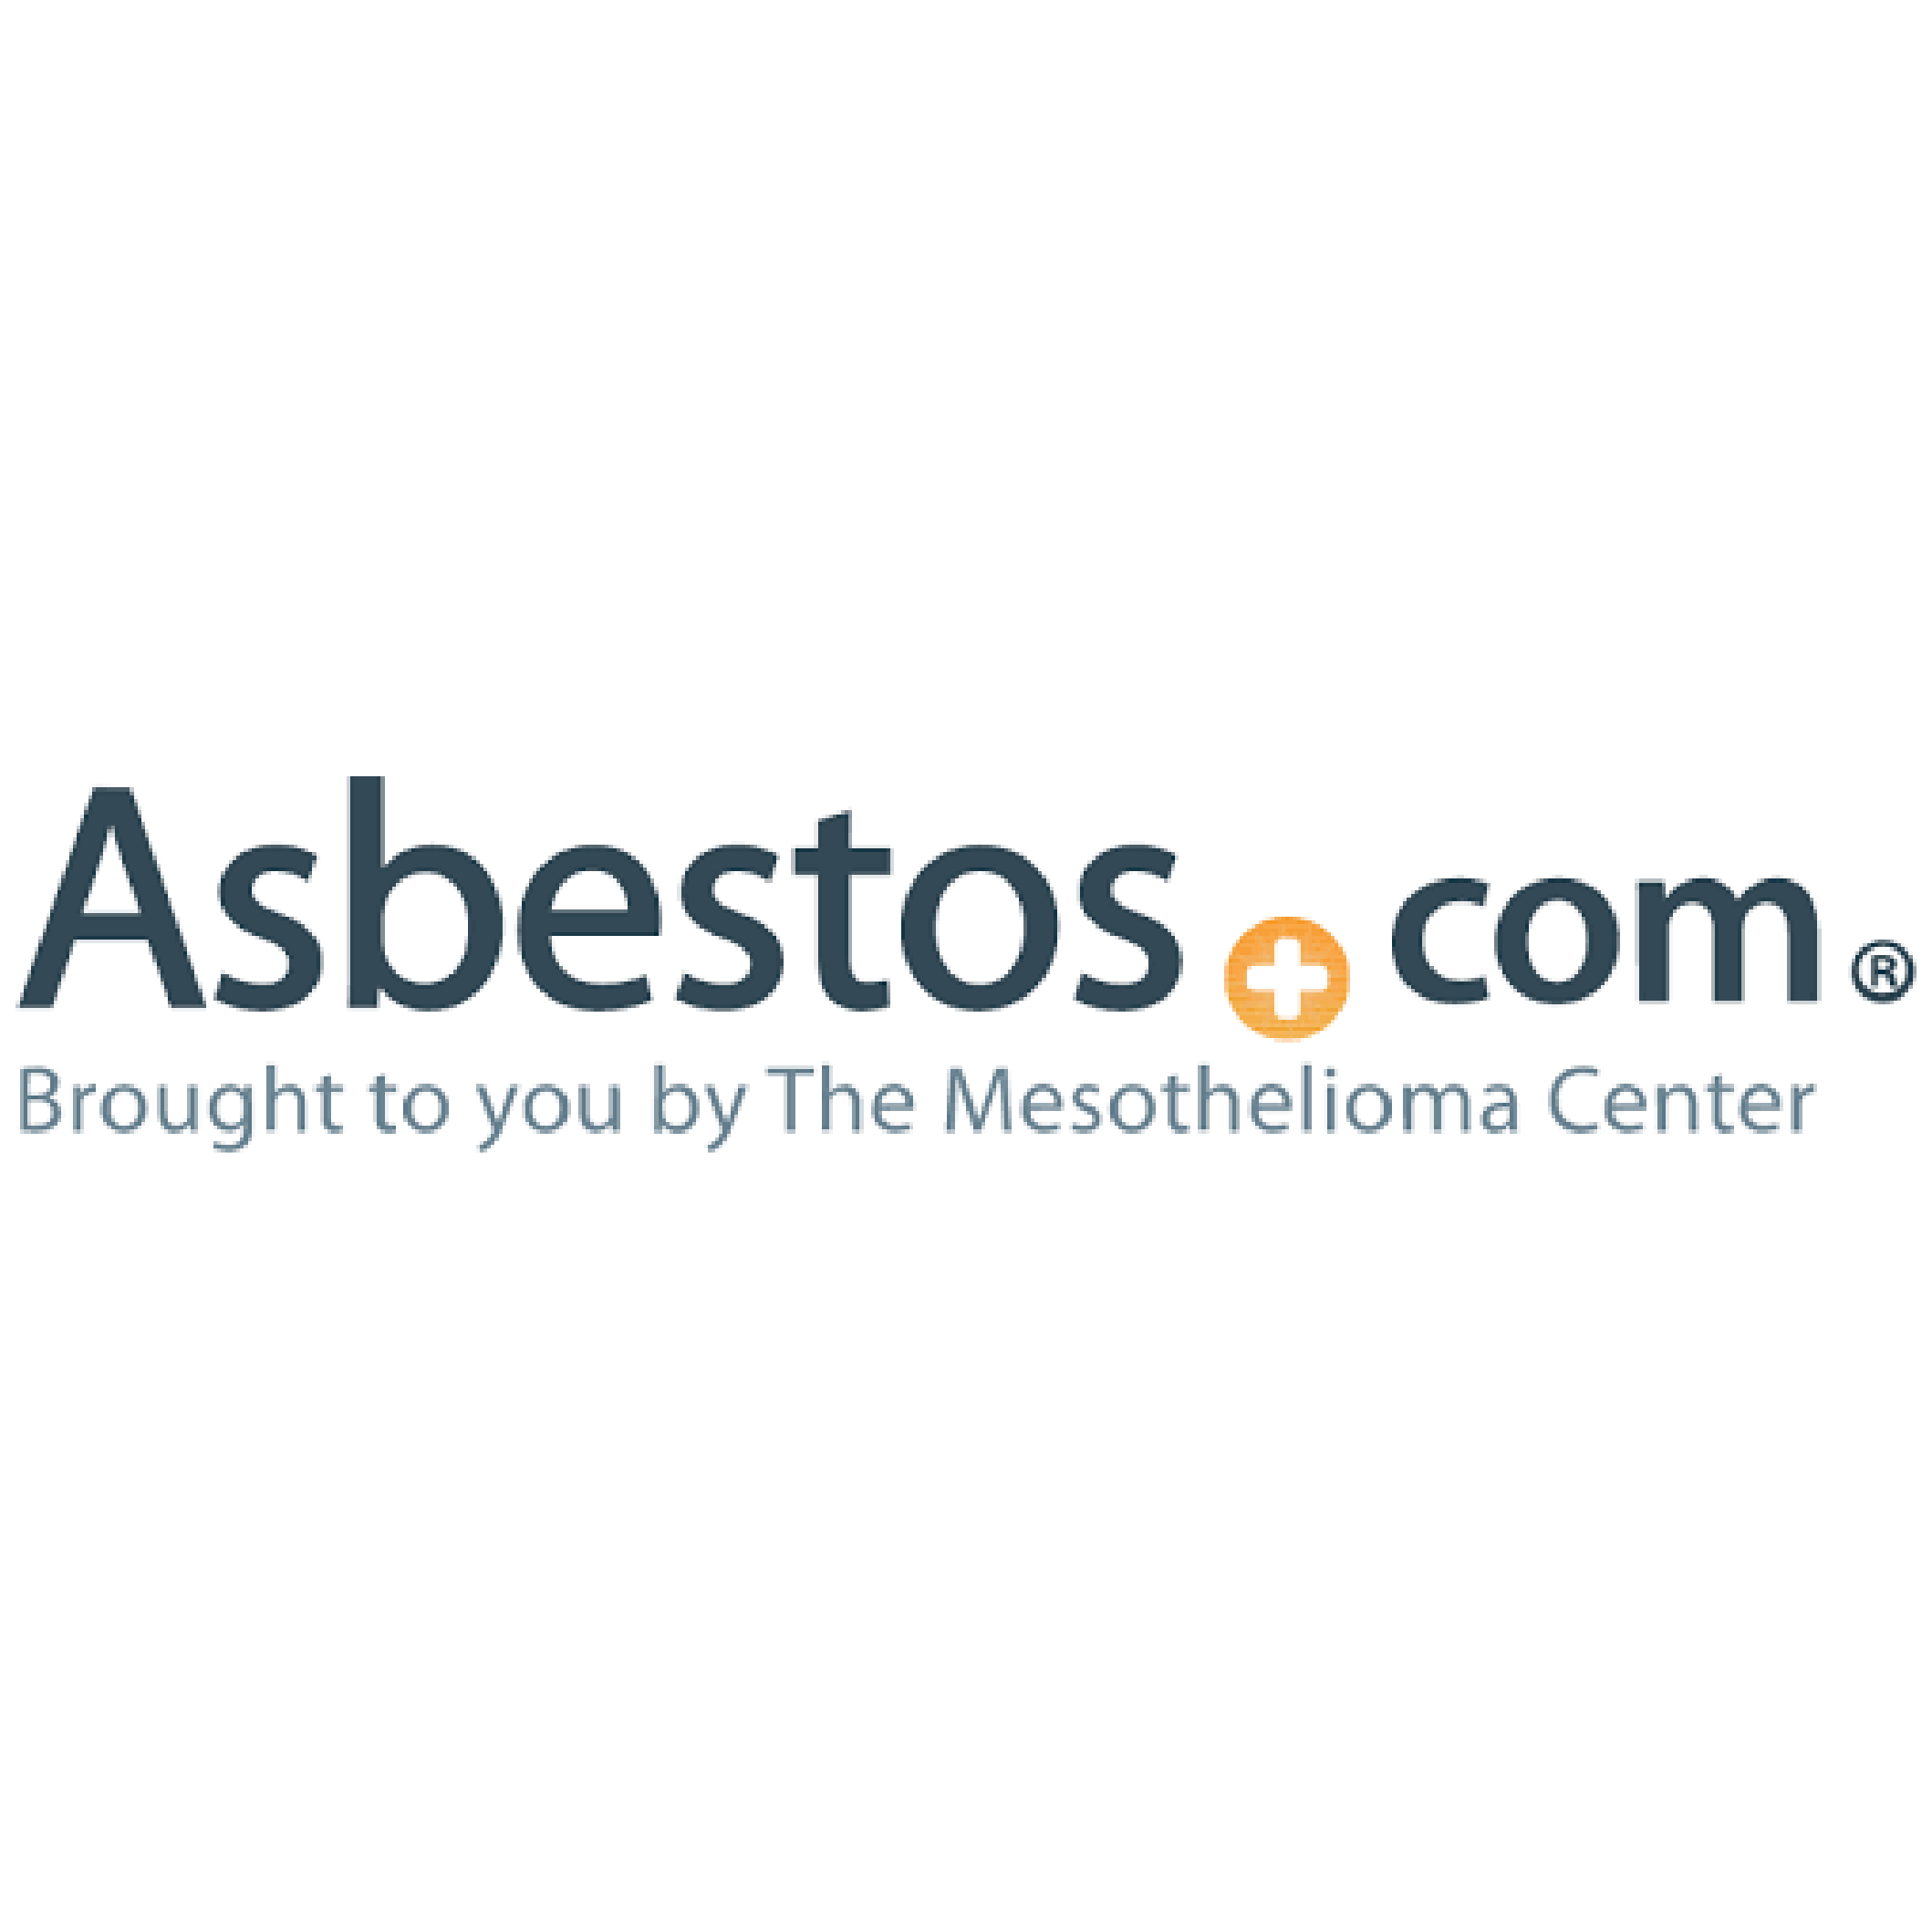 The Mesothelioma Center - Spreading awareness of asbestos-related disease and providing information as well as support is vitally important for those currently fighting the disease and for preventing it in the future. The Mesothelioma Center aims to provide these services with the hope that their support can be used as a life-saving resource.